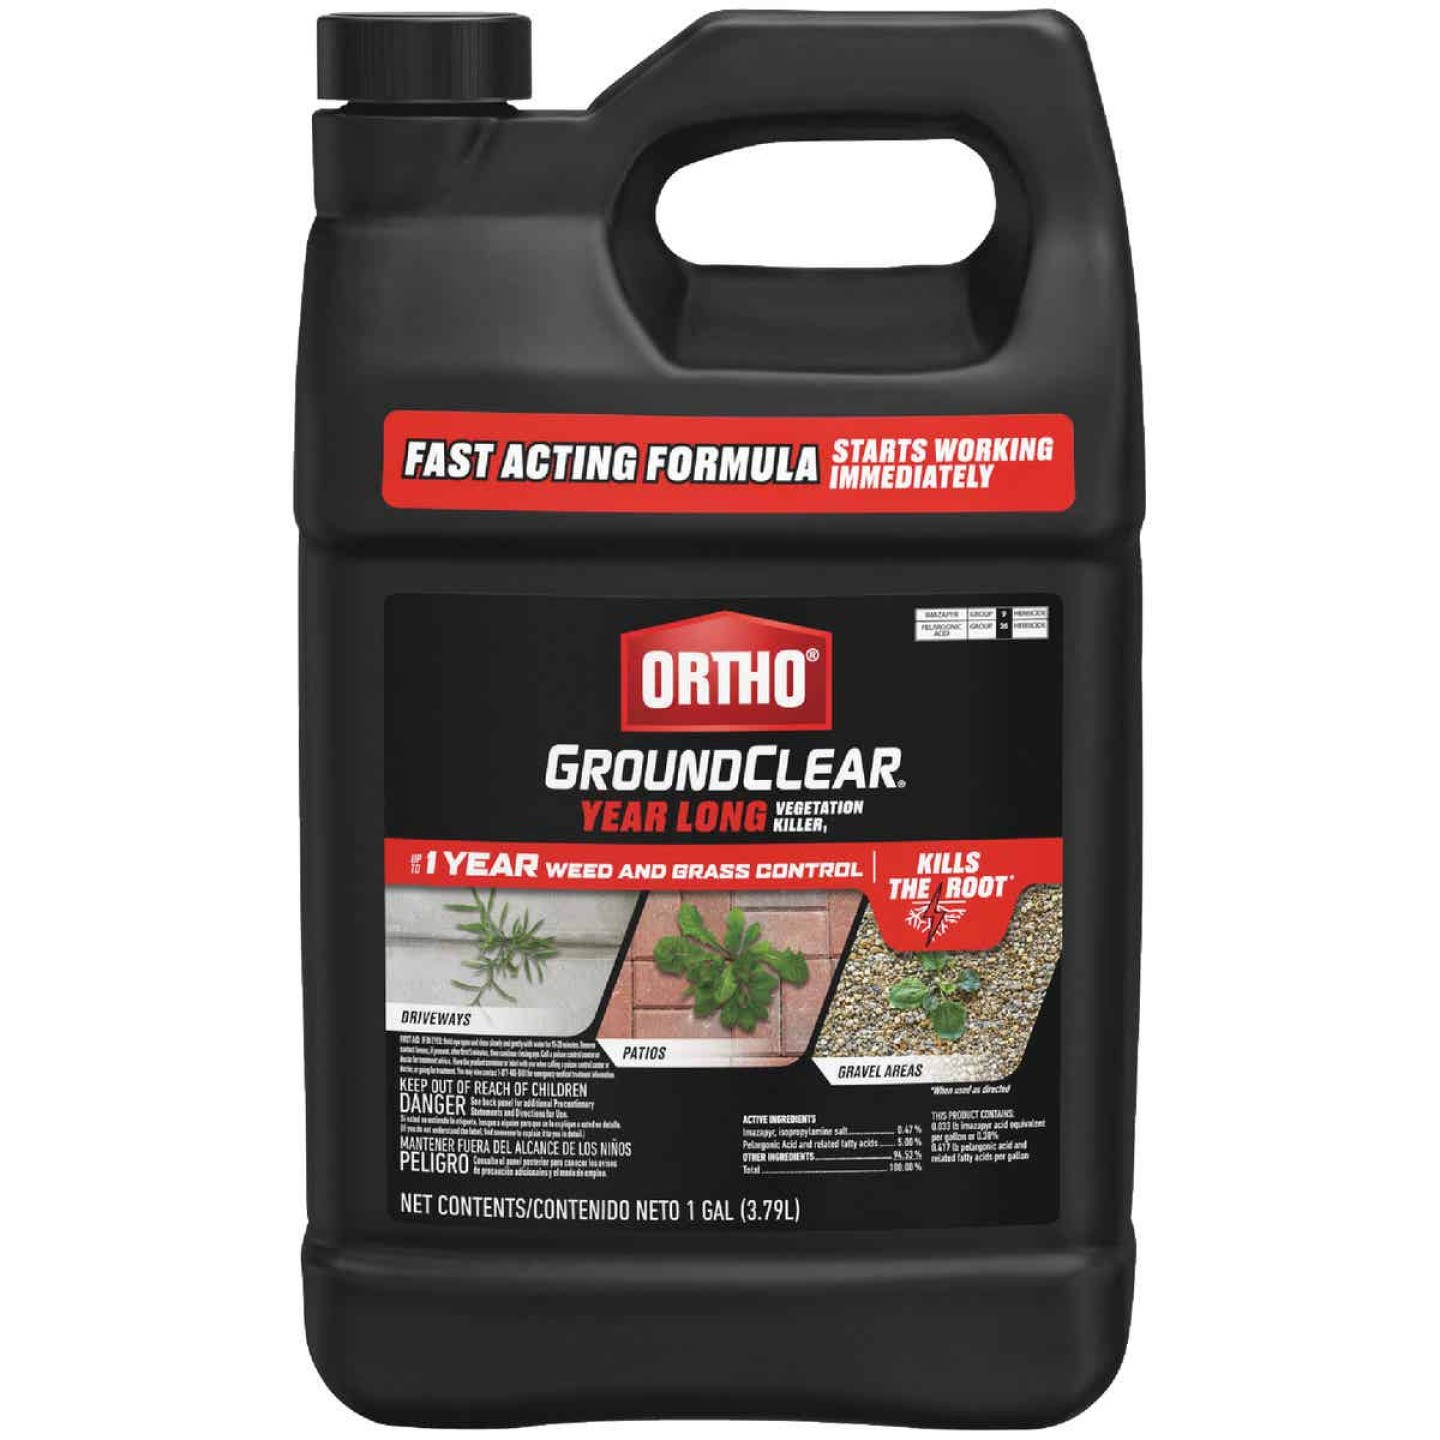 Ortho GroundClear 1 Gal. Concentrate Vegetation Killer Image 1